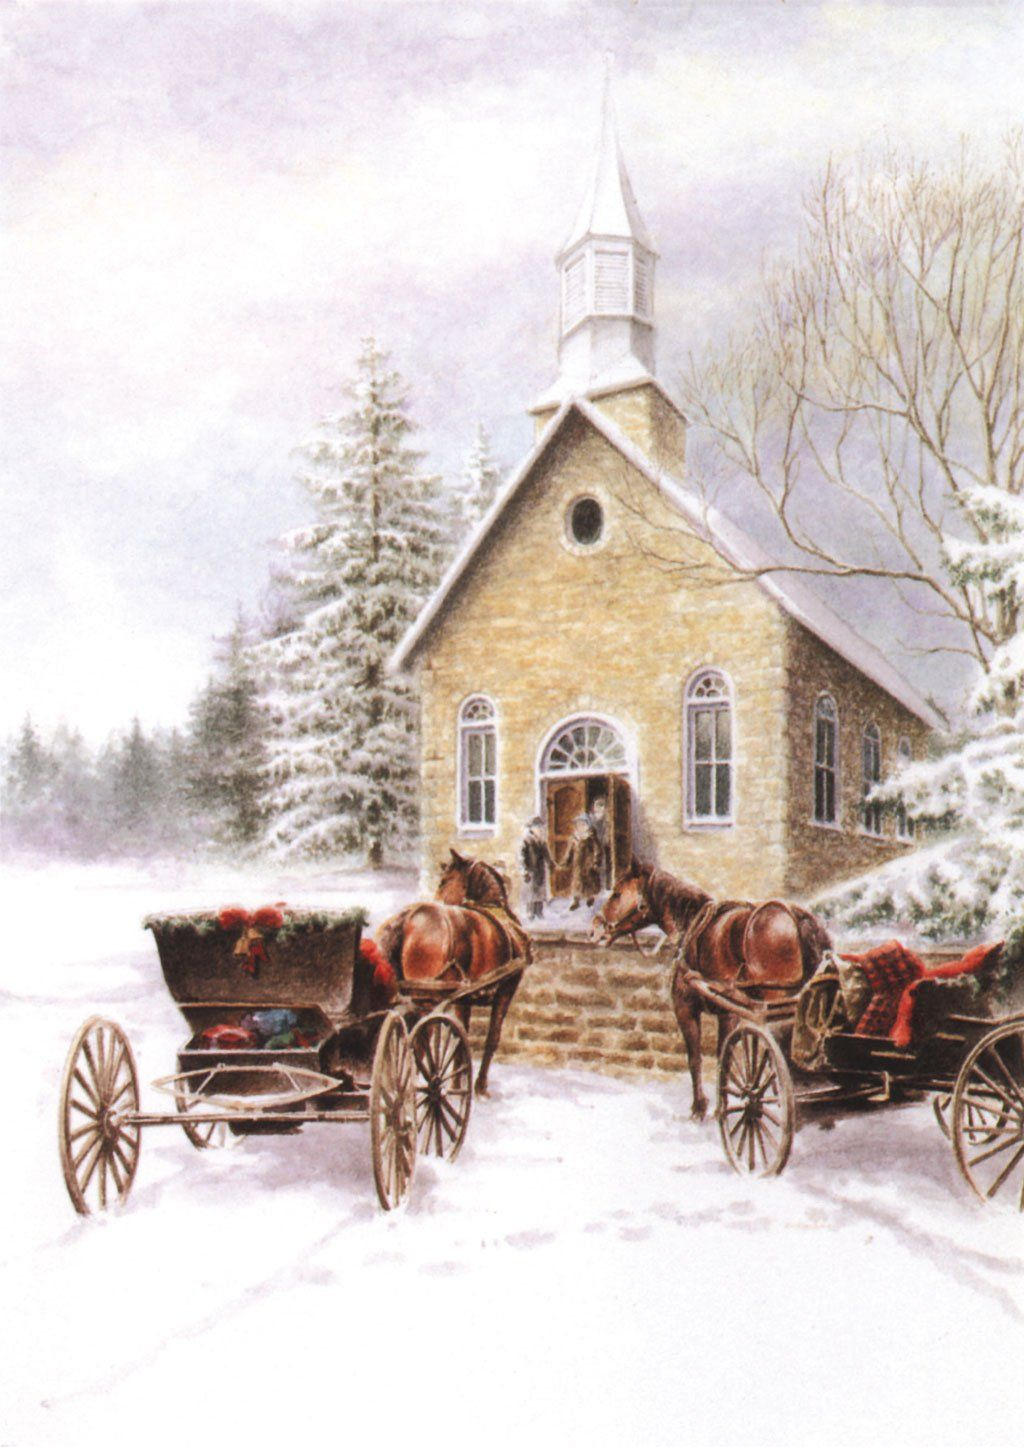 'Small Town Christmas' Merry Christmas Card - Northern Cards front